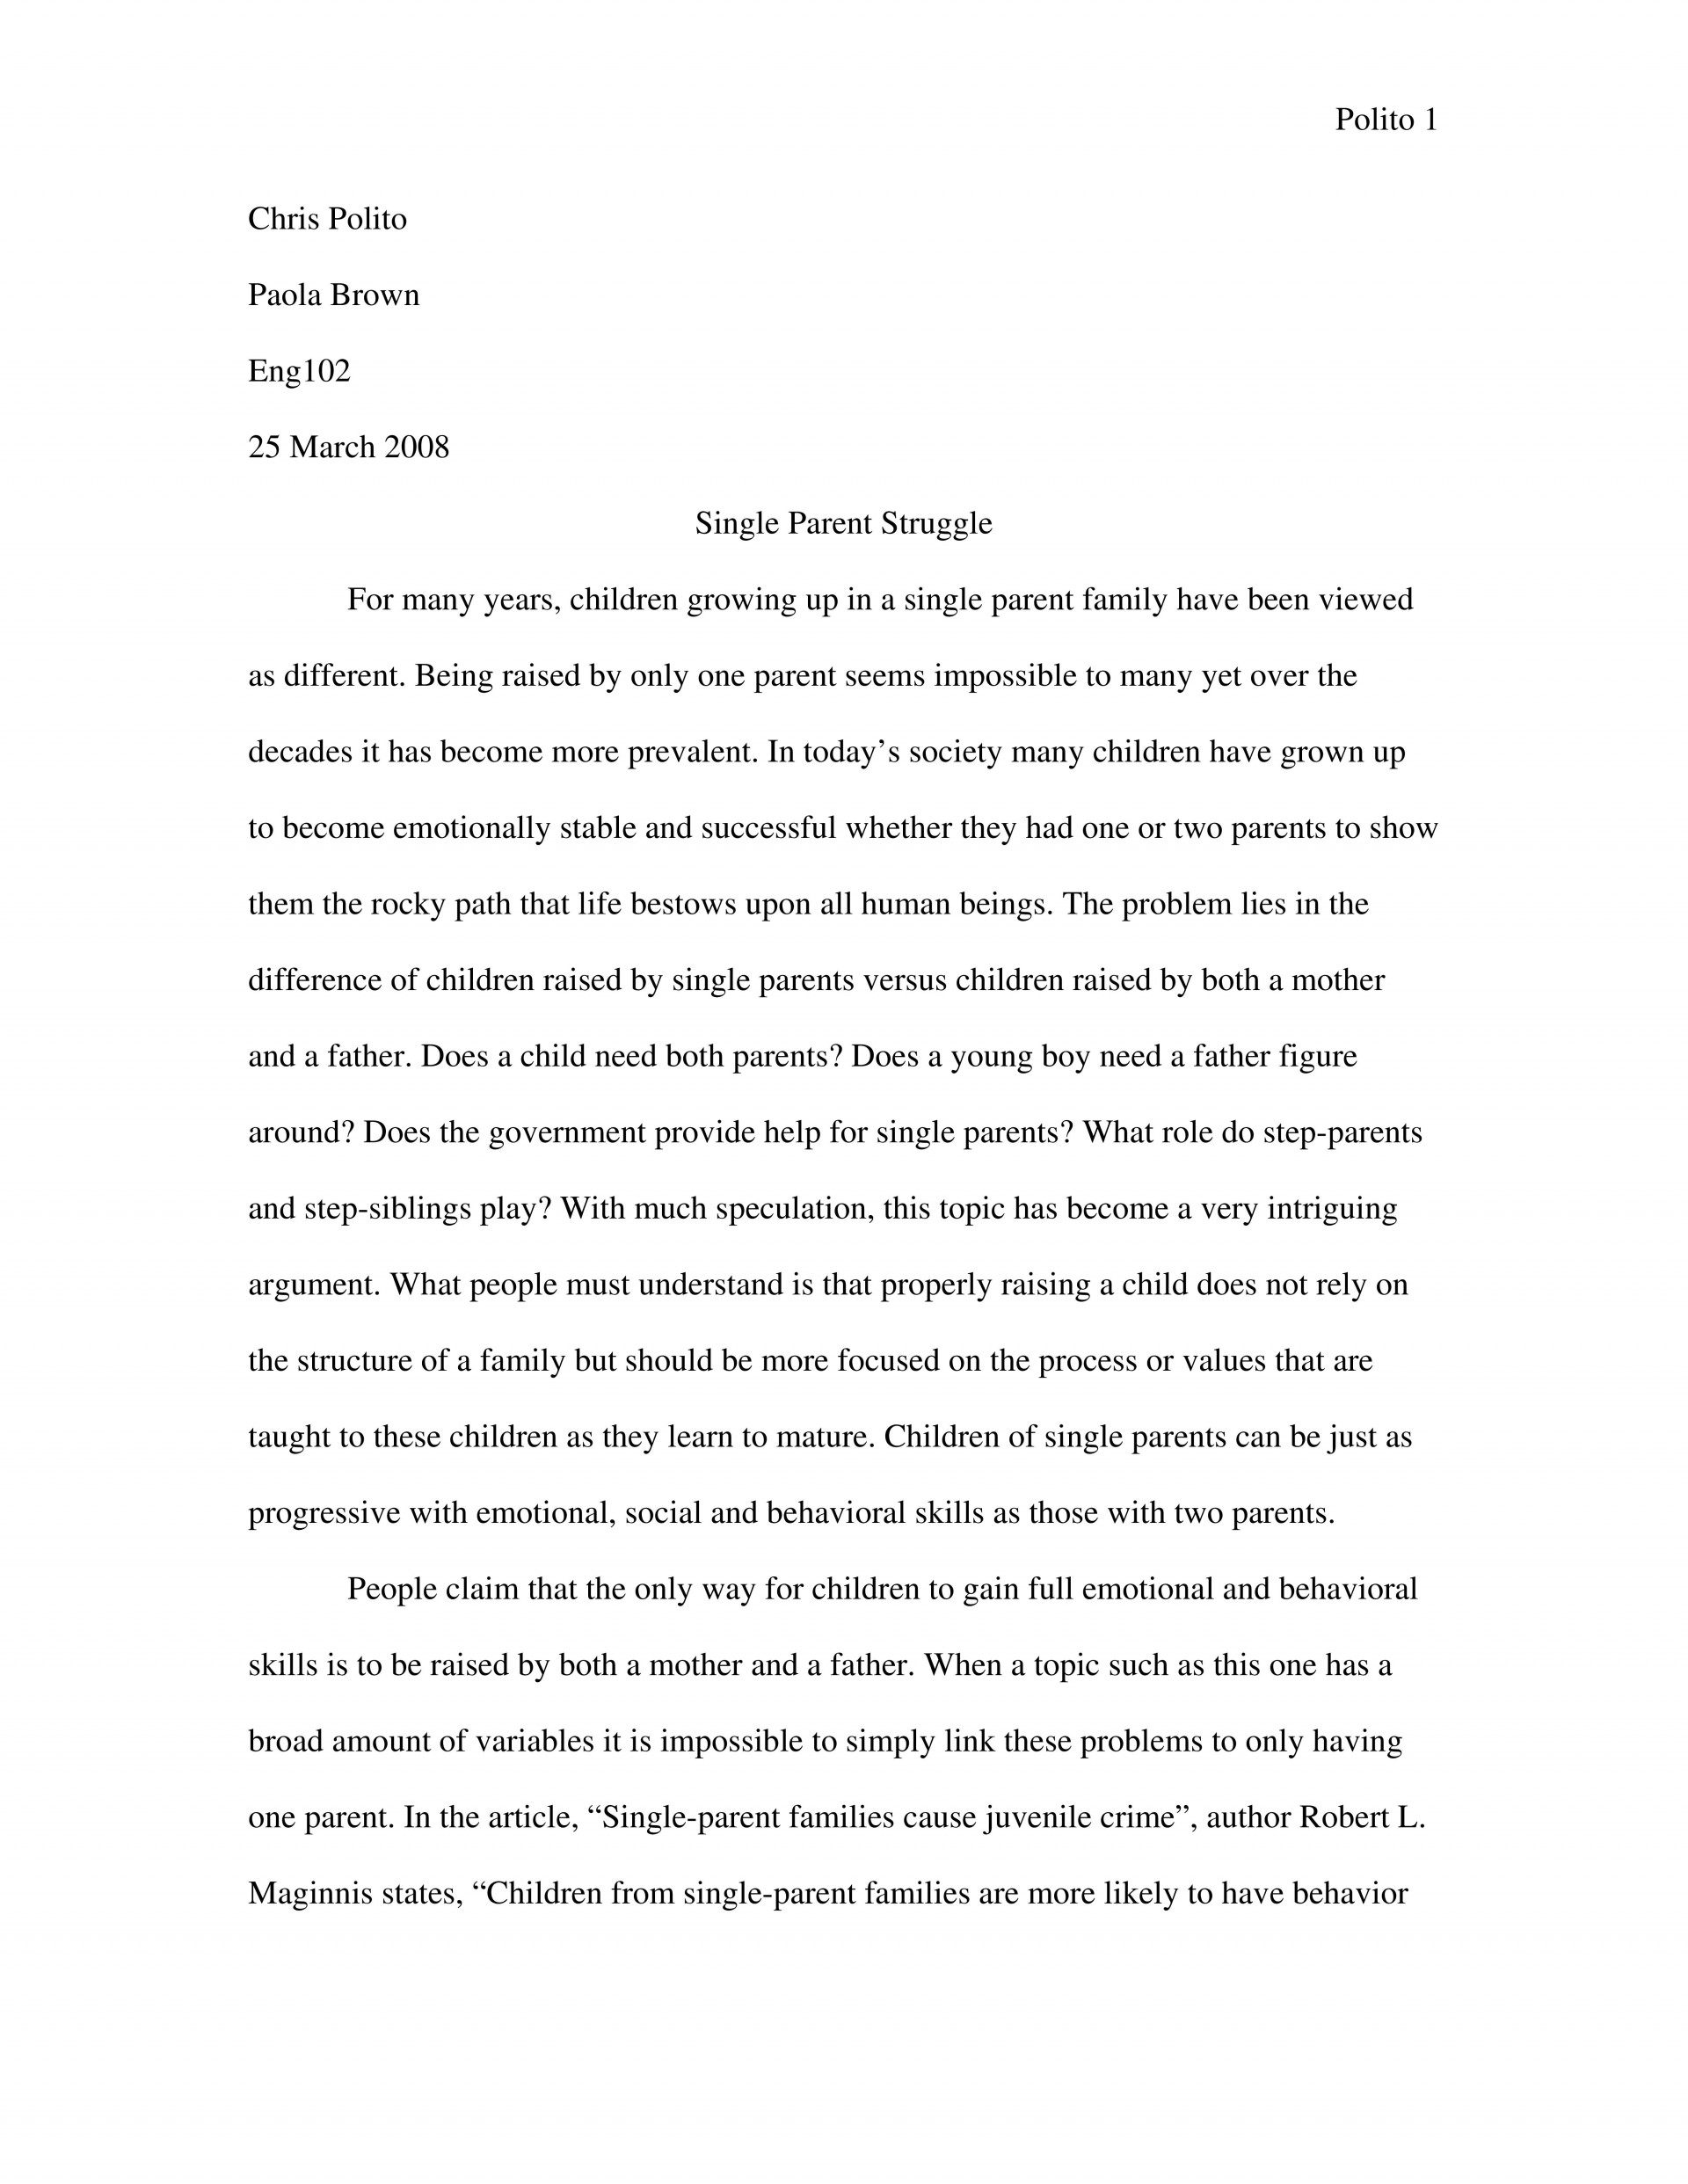 002 Essay Example Expository Sample 2 Examples Of Fantastic Essays For 4th Grade 8th Middle School 1920